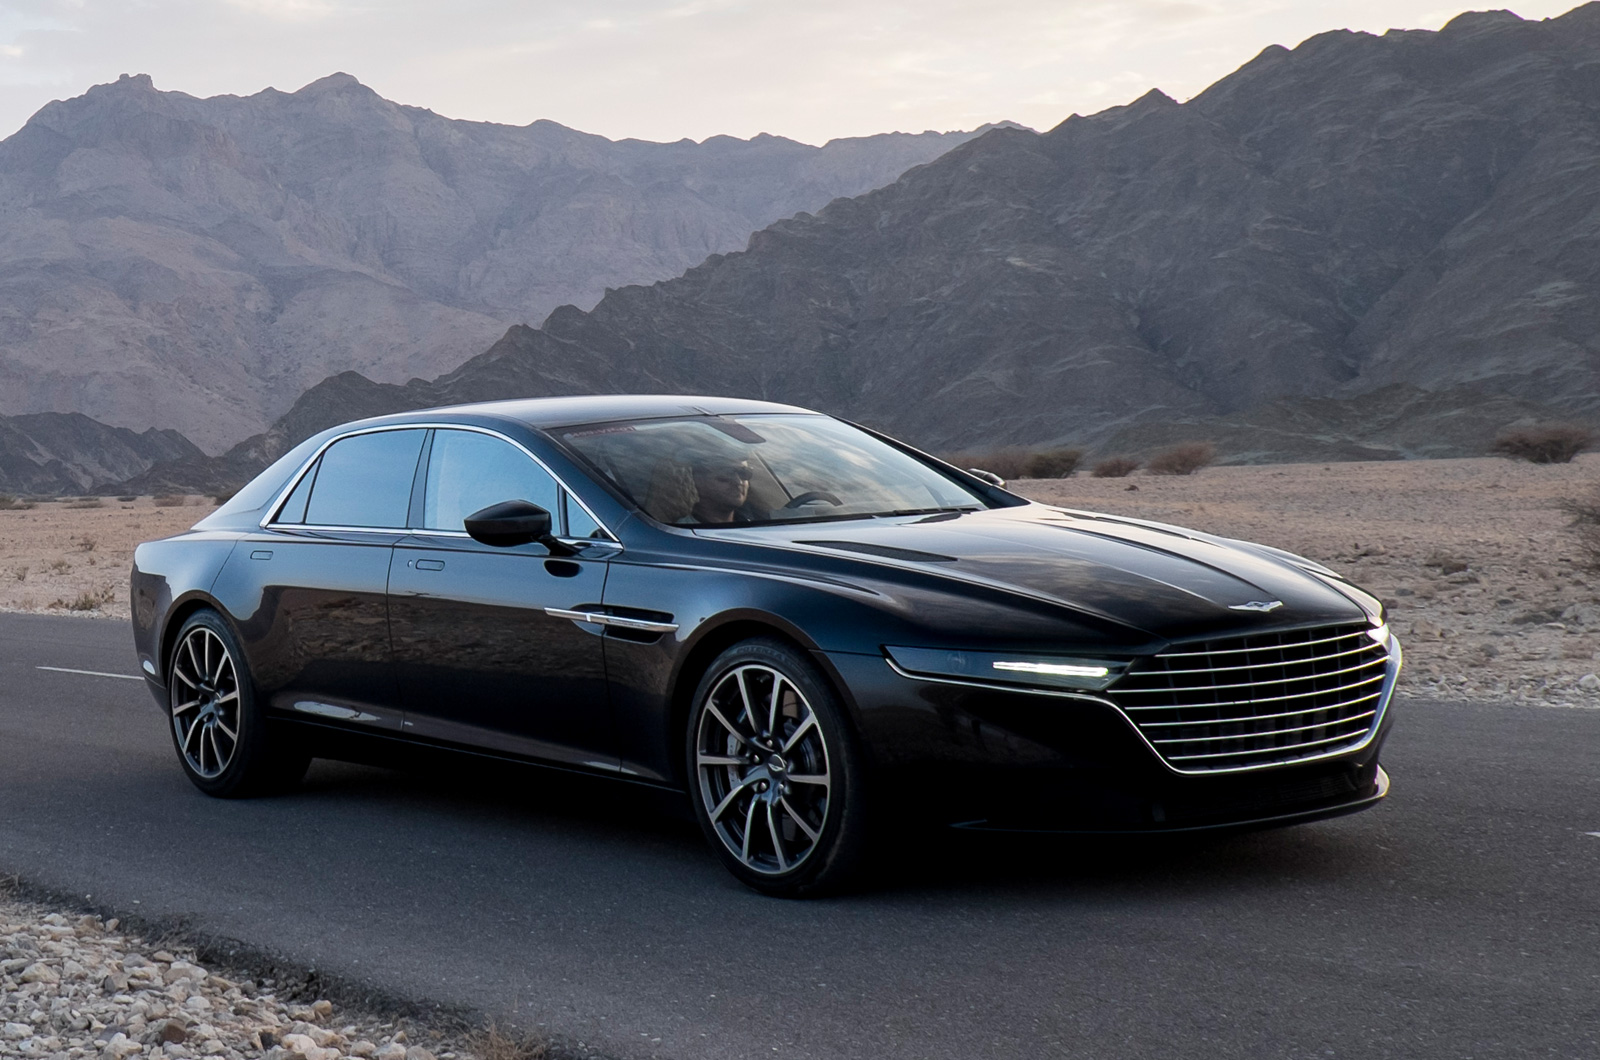 Aston Martin Shows New Lagonda Sedan 30+ Photos | Carscoops